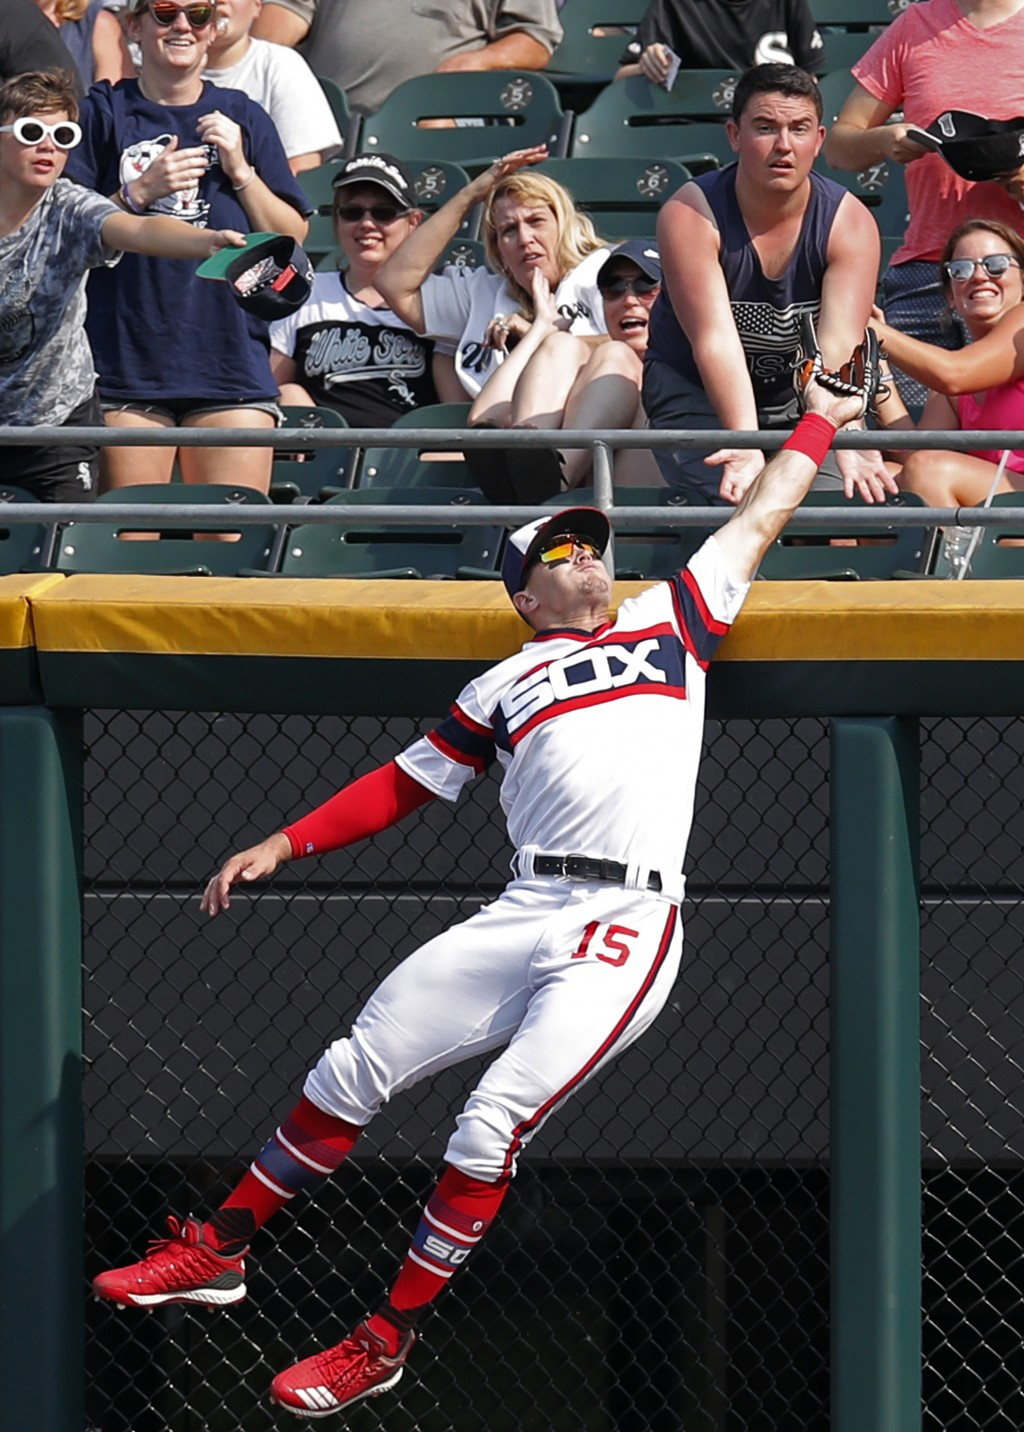 Chicago White Sox's Adam Engel (15) makes a catch against the wall for an out on a ball hit by Cleveland Indians' Yonder Alonso during the eighth inni